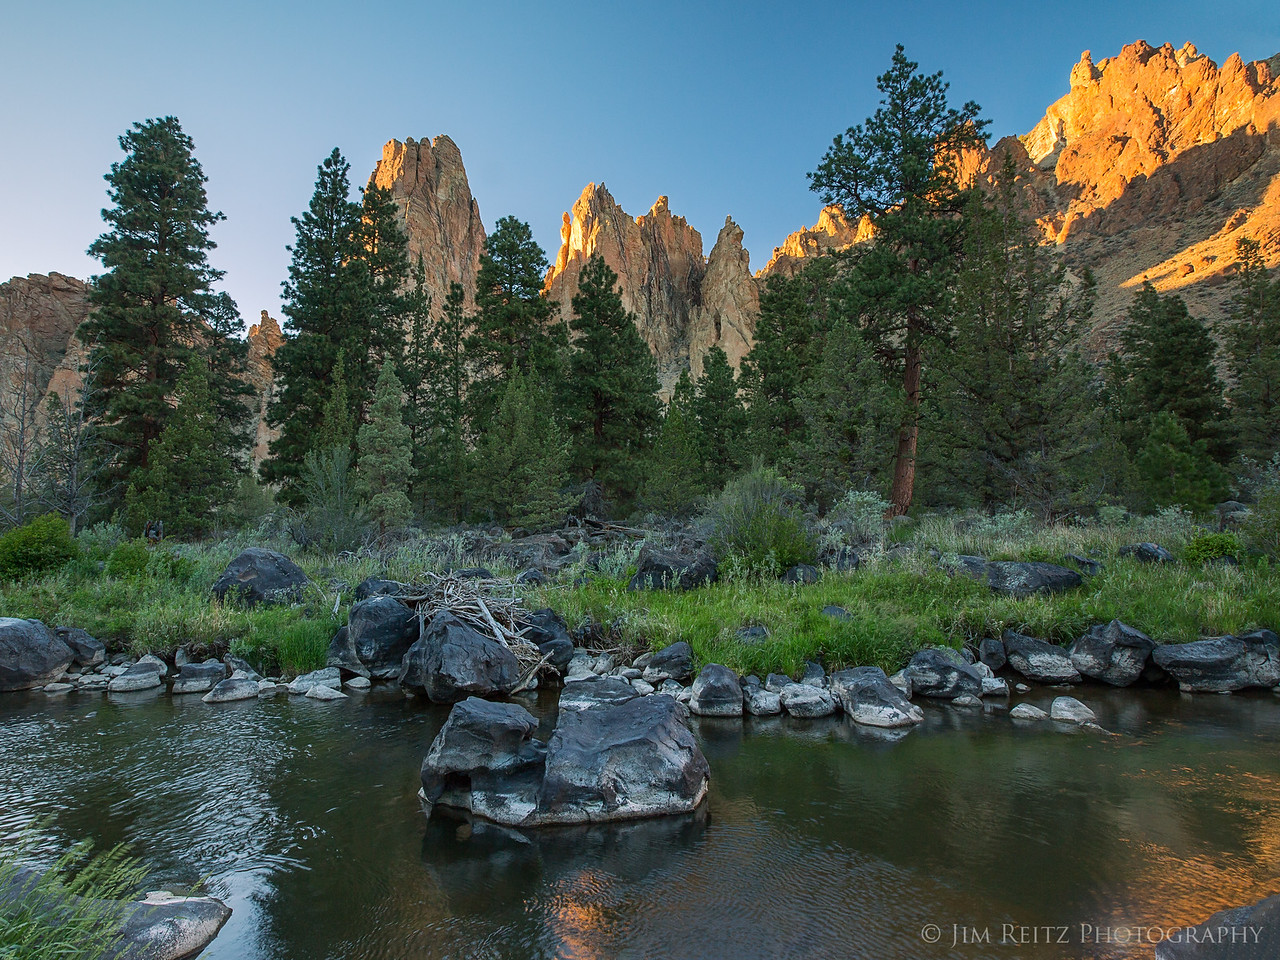 Sunset light on the peaks - Smith Rock state park in central Oregon